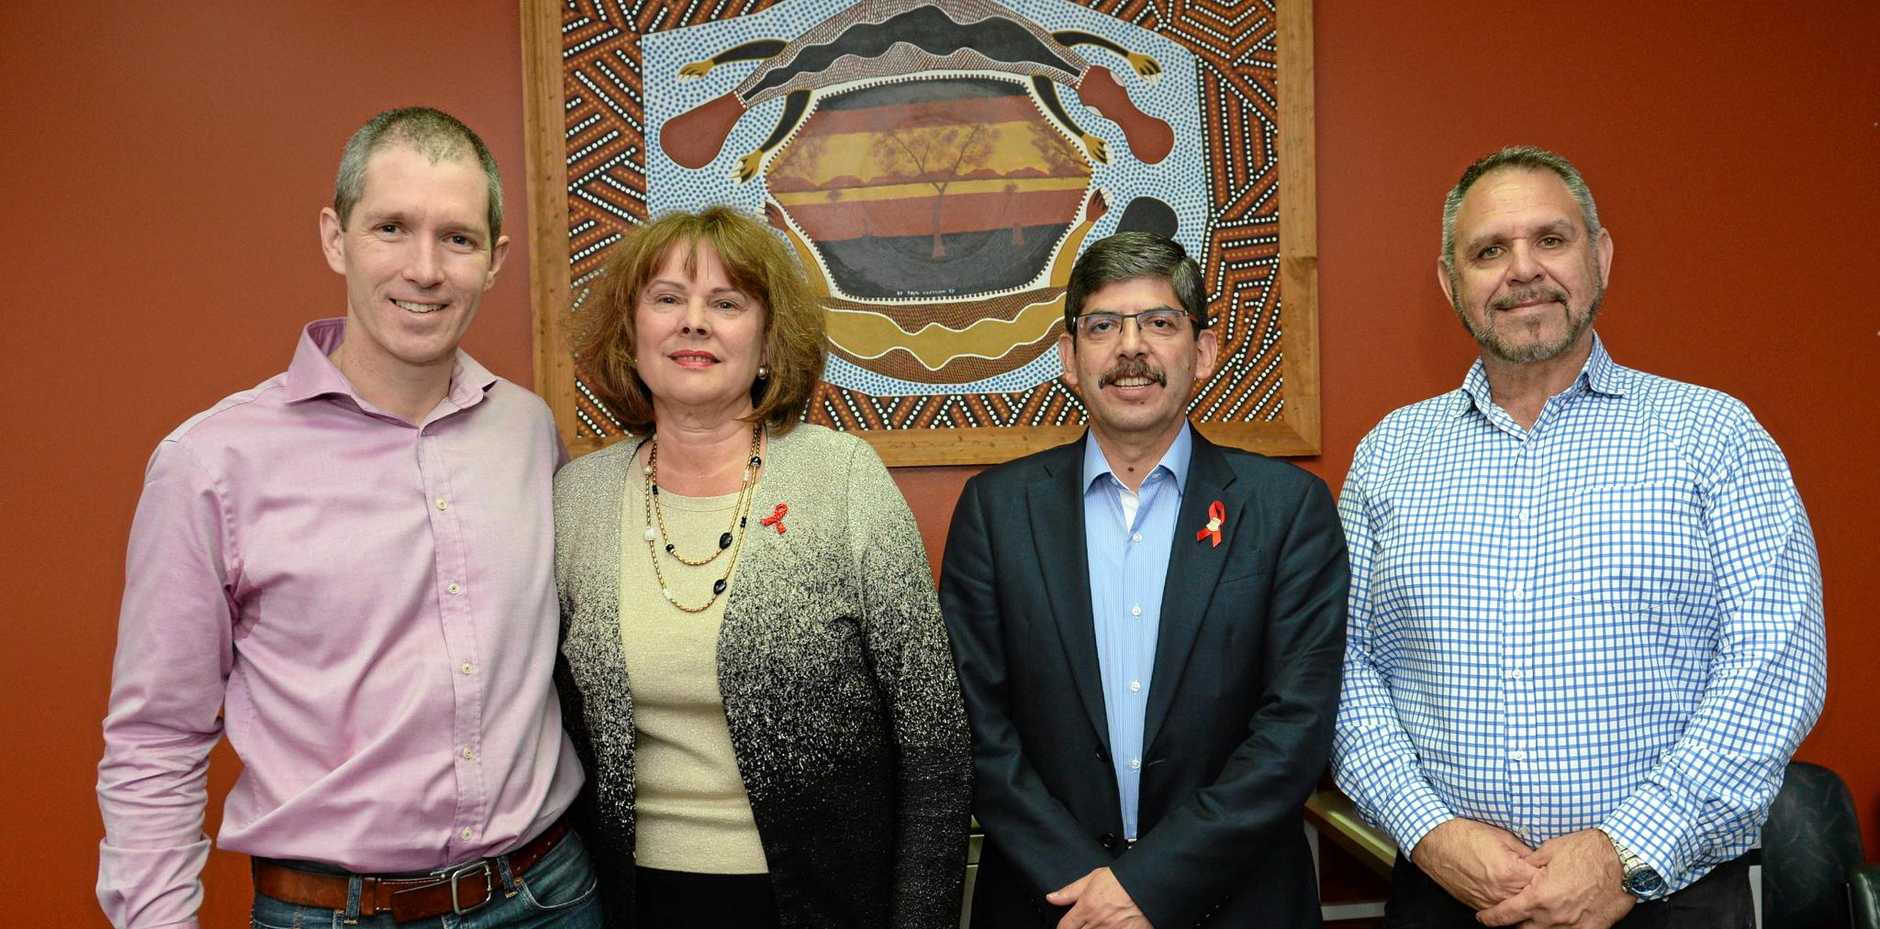 HIV TESTING: New approaches to HIV treatment and its prevention speakers Dr Andrew Redmond, Irene Day, Dr Rolando Barrios and A/Prof James Ward.Photo Allan Reinikka / The Morning Bulletin